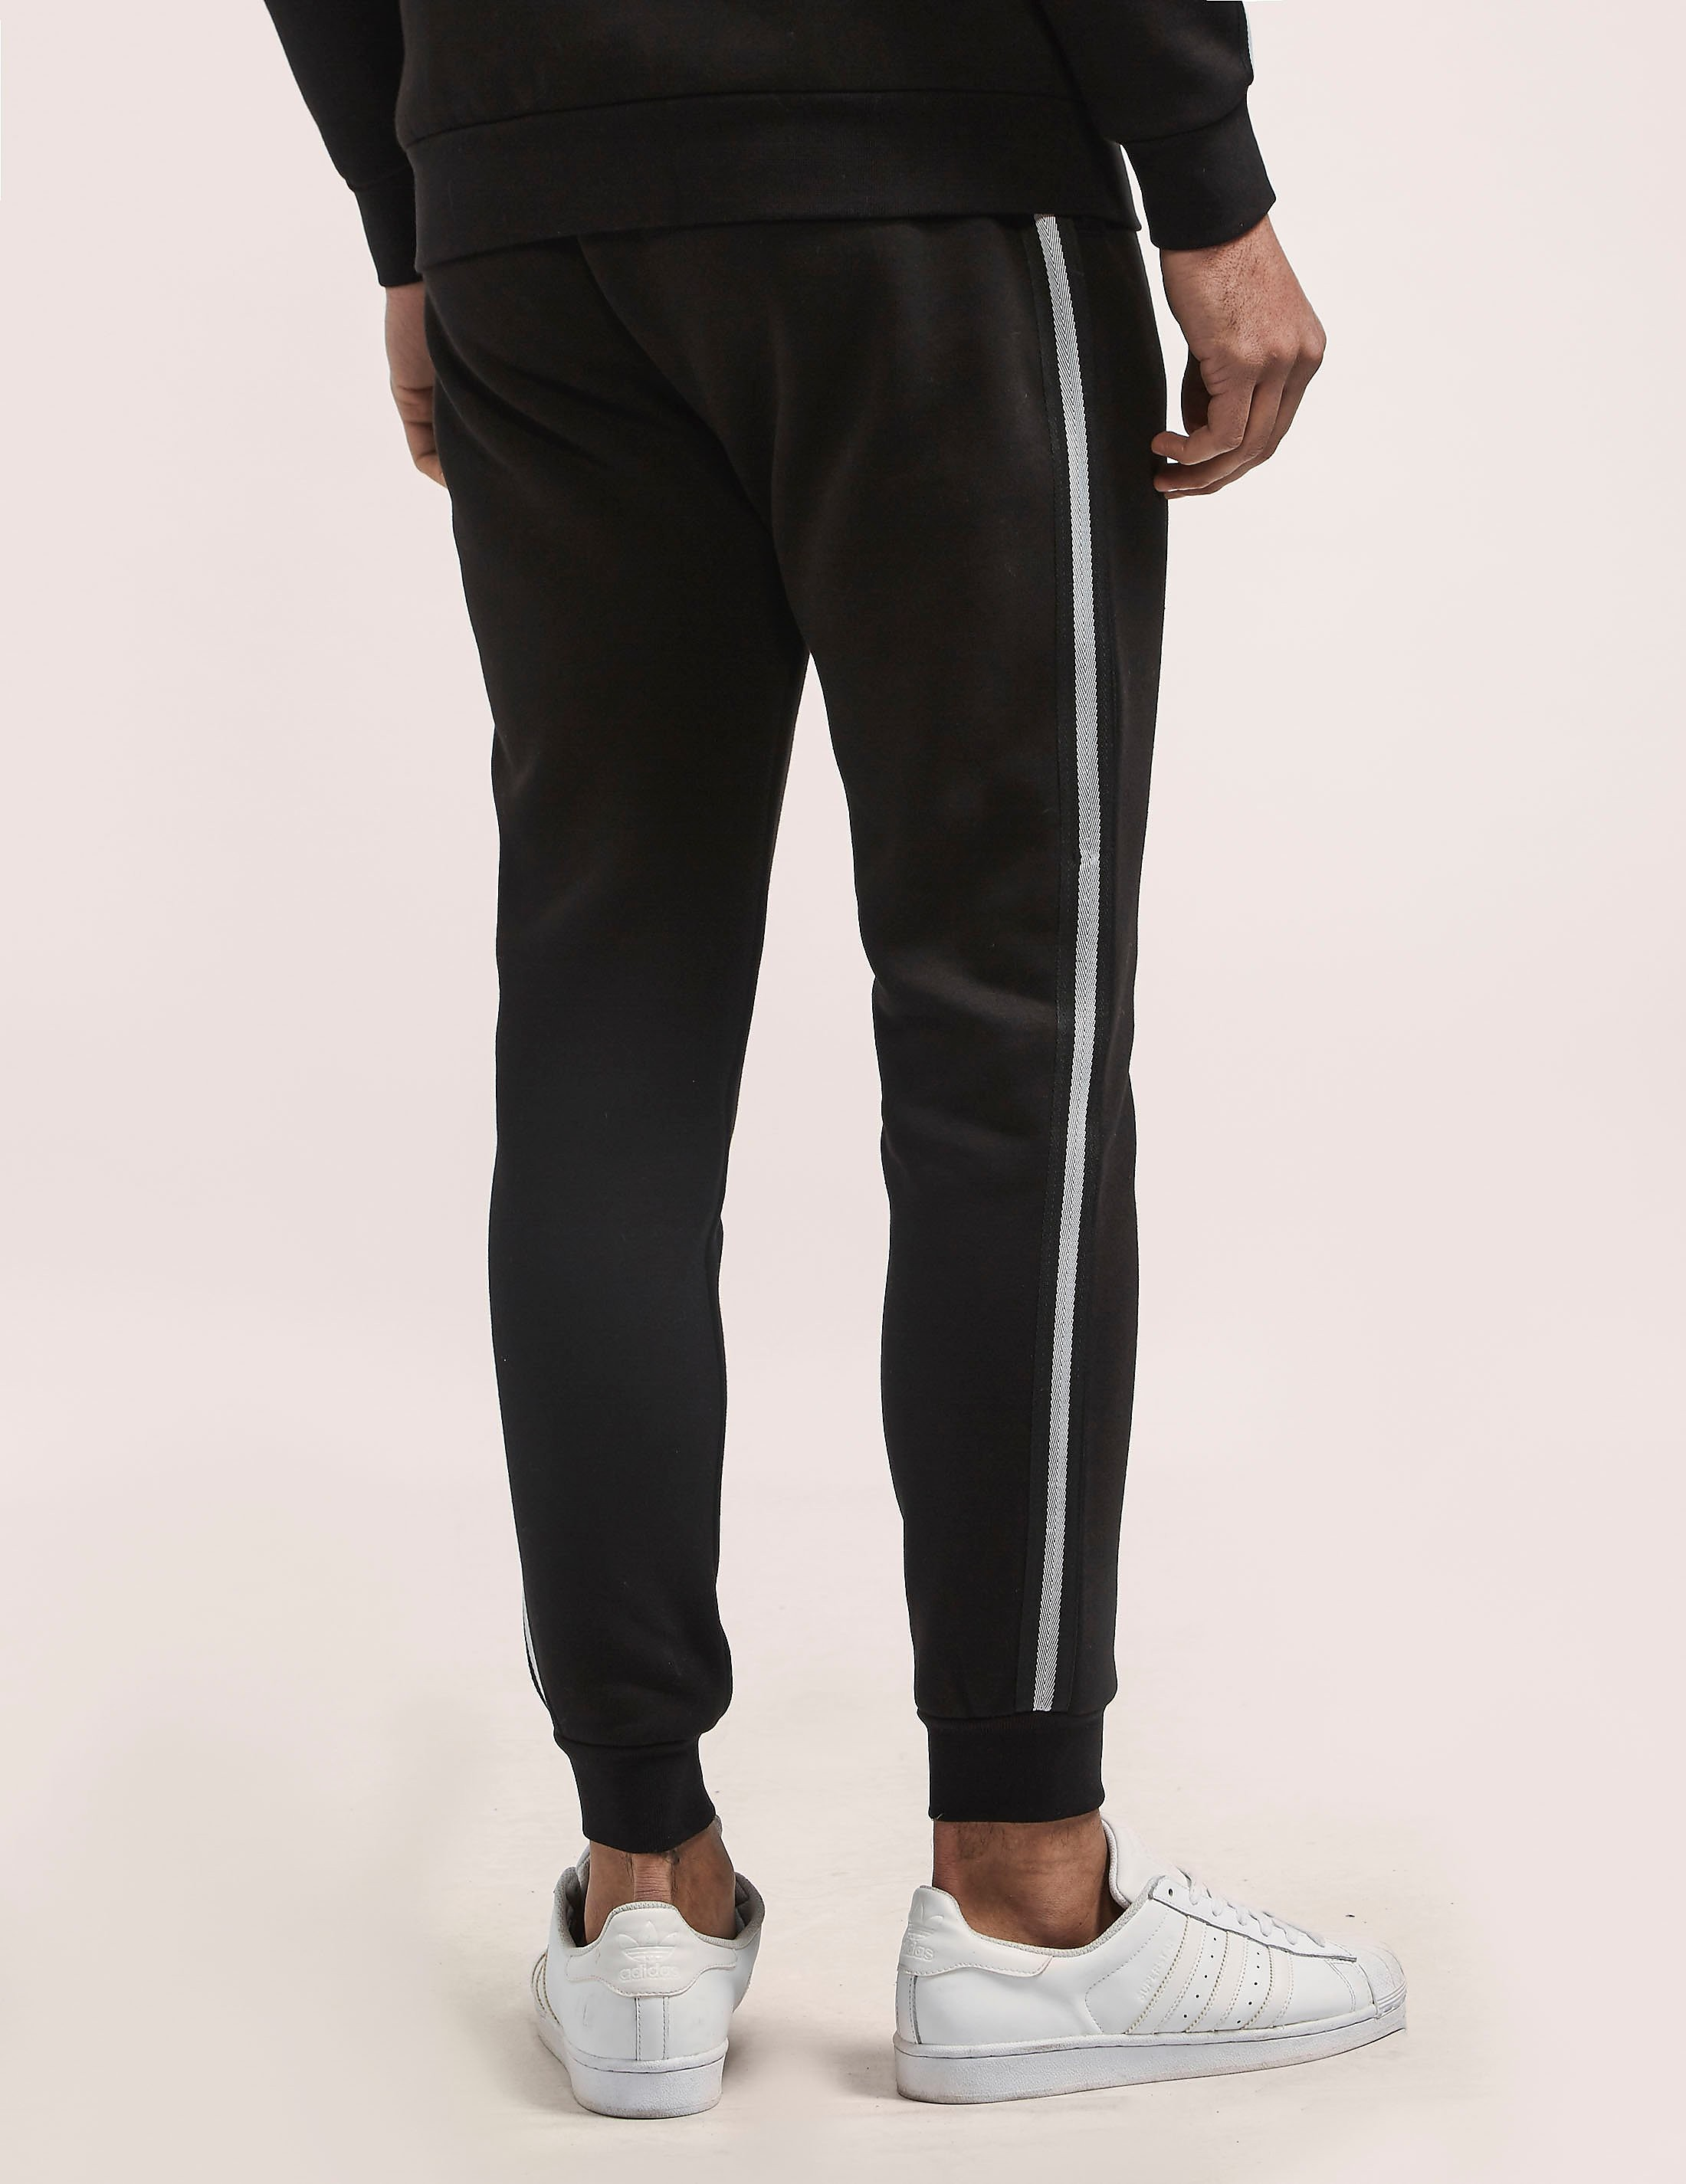 Intense Clothing Envy Track Pants